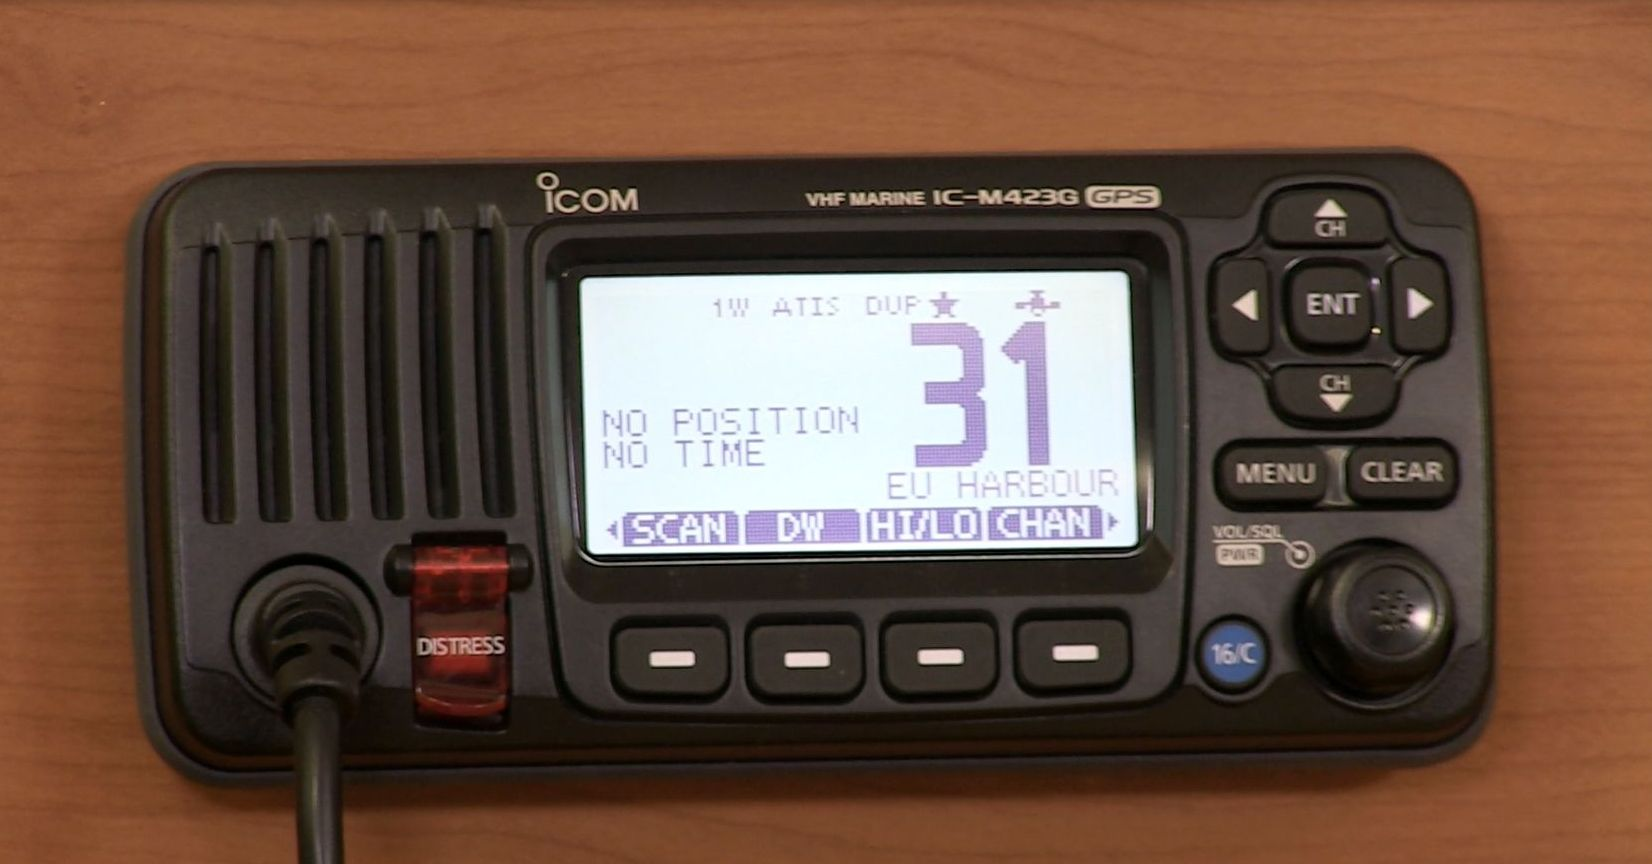 Video What Is Atis And How To Enable It On An Icom